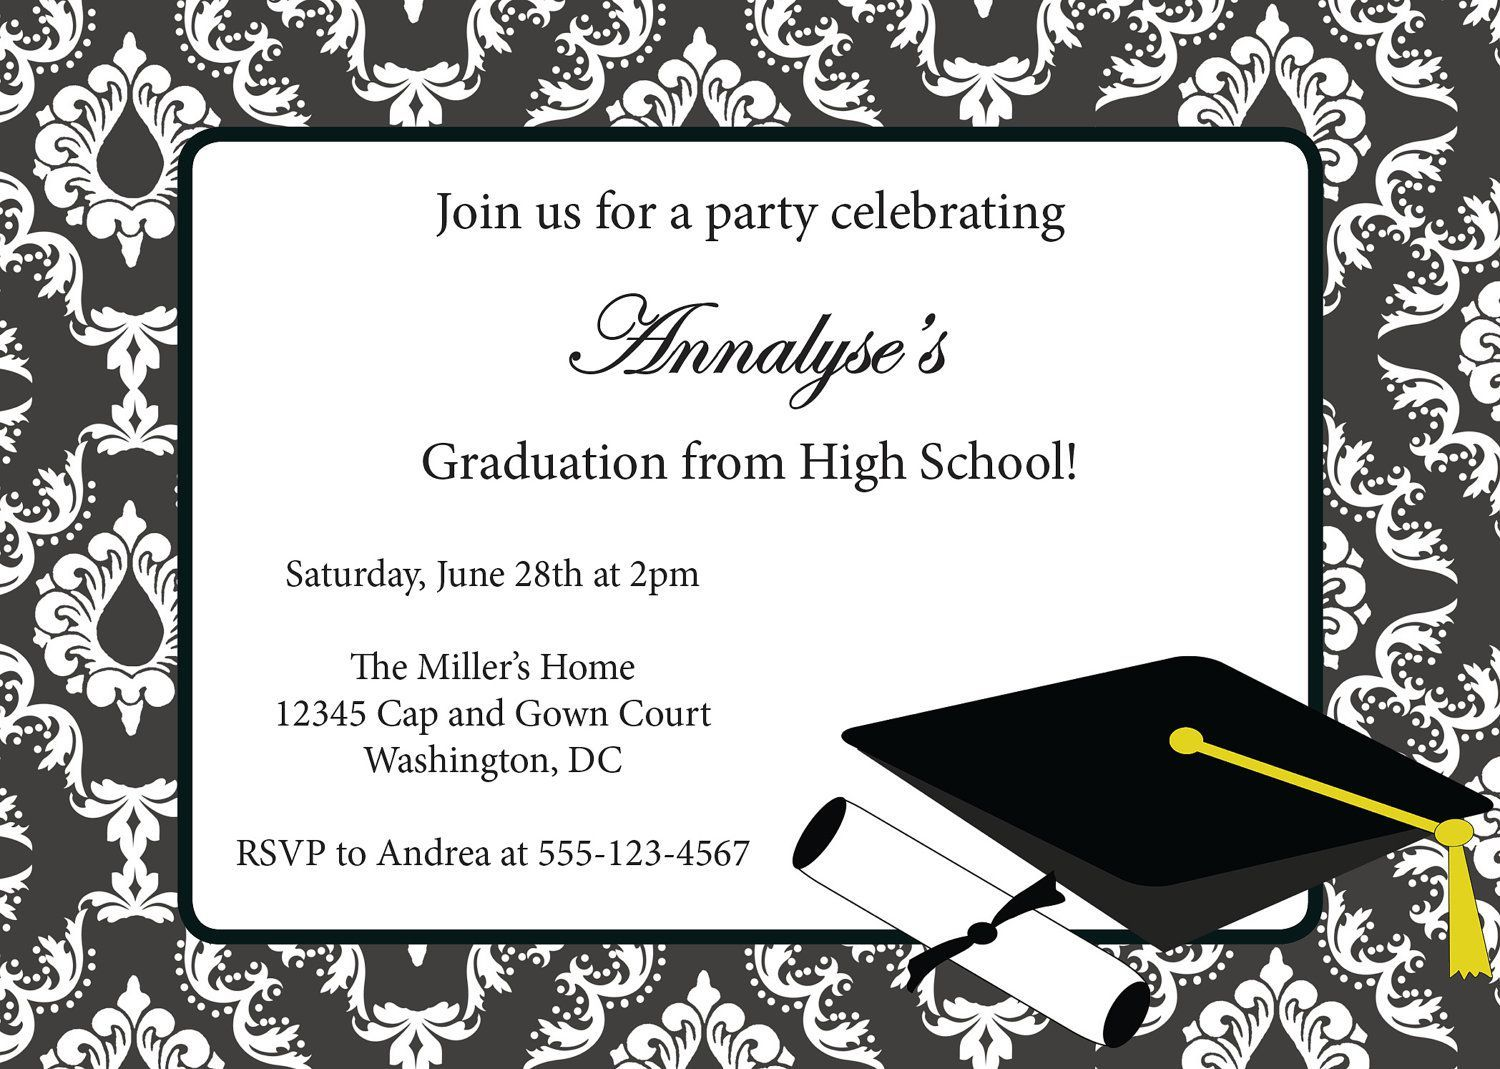 002 Amazing College Graduation Invitation Template Sample  Templates Free PartyFull